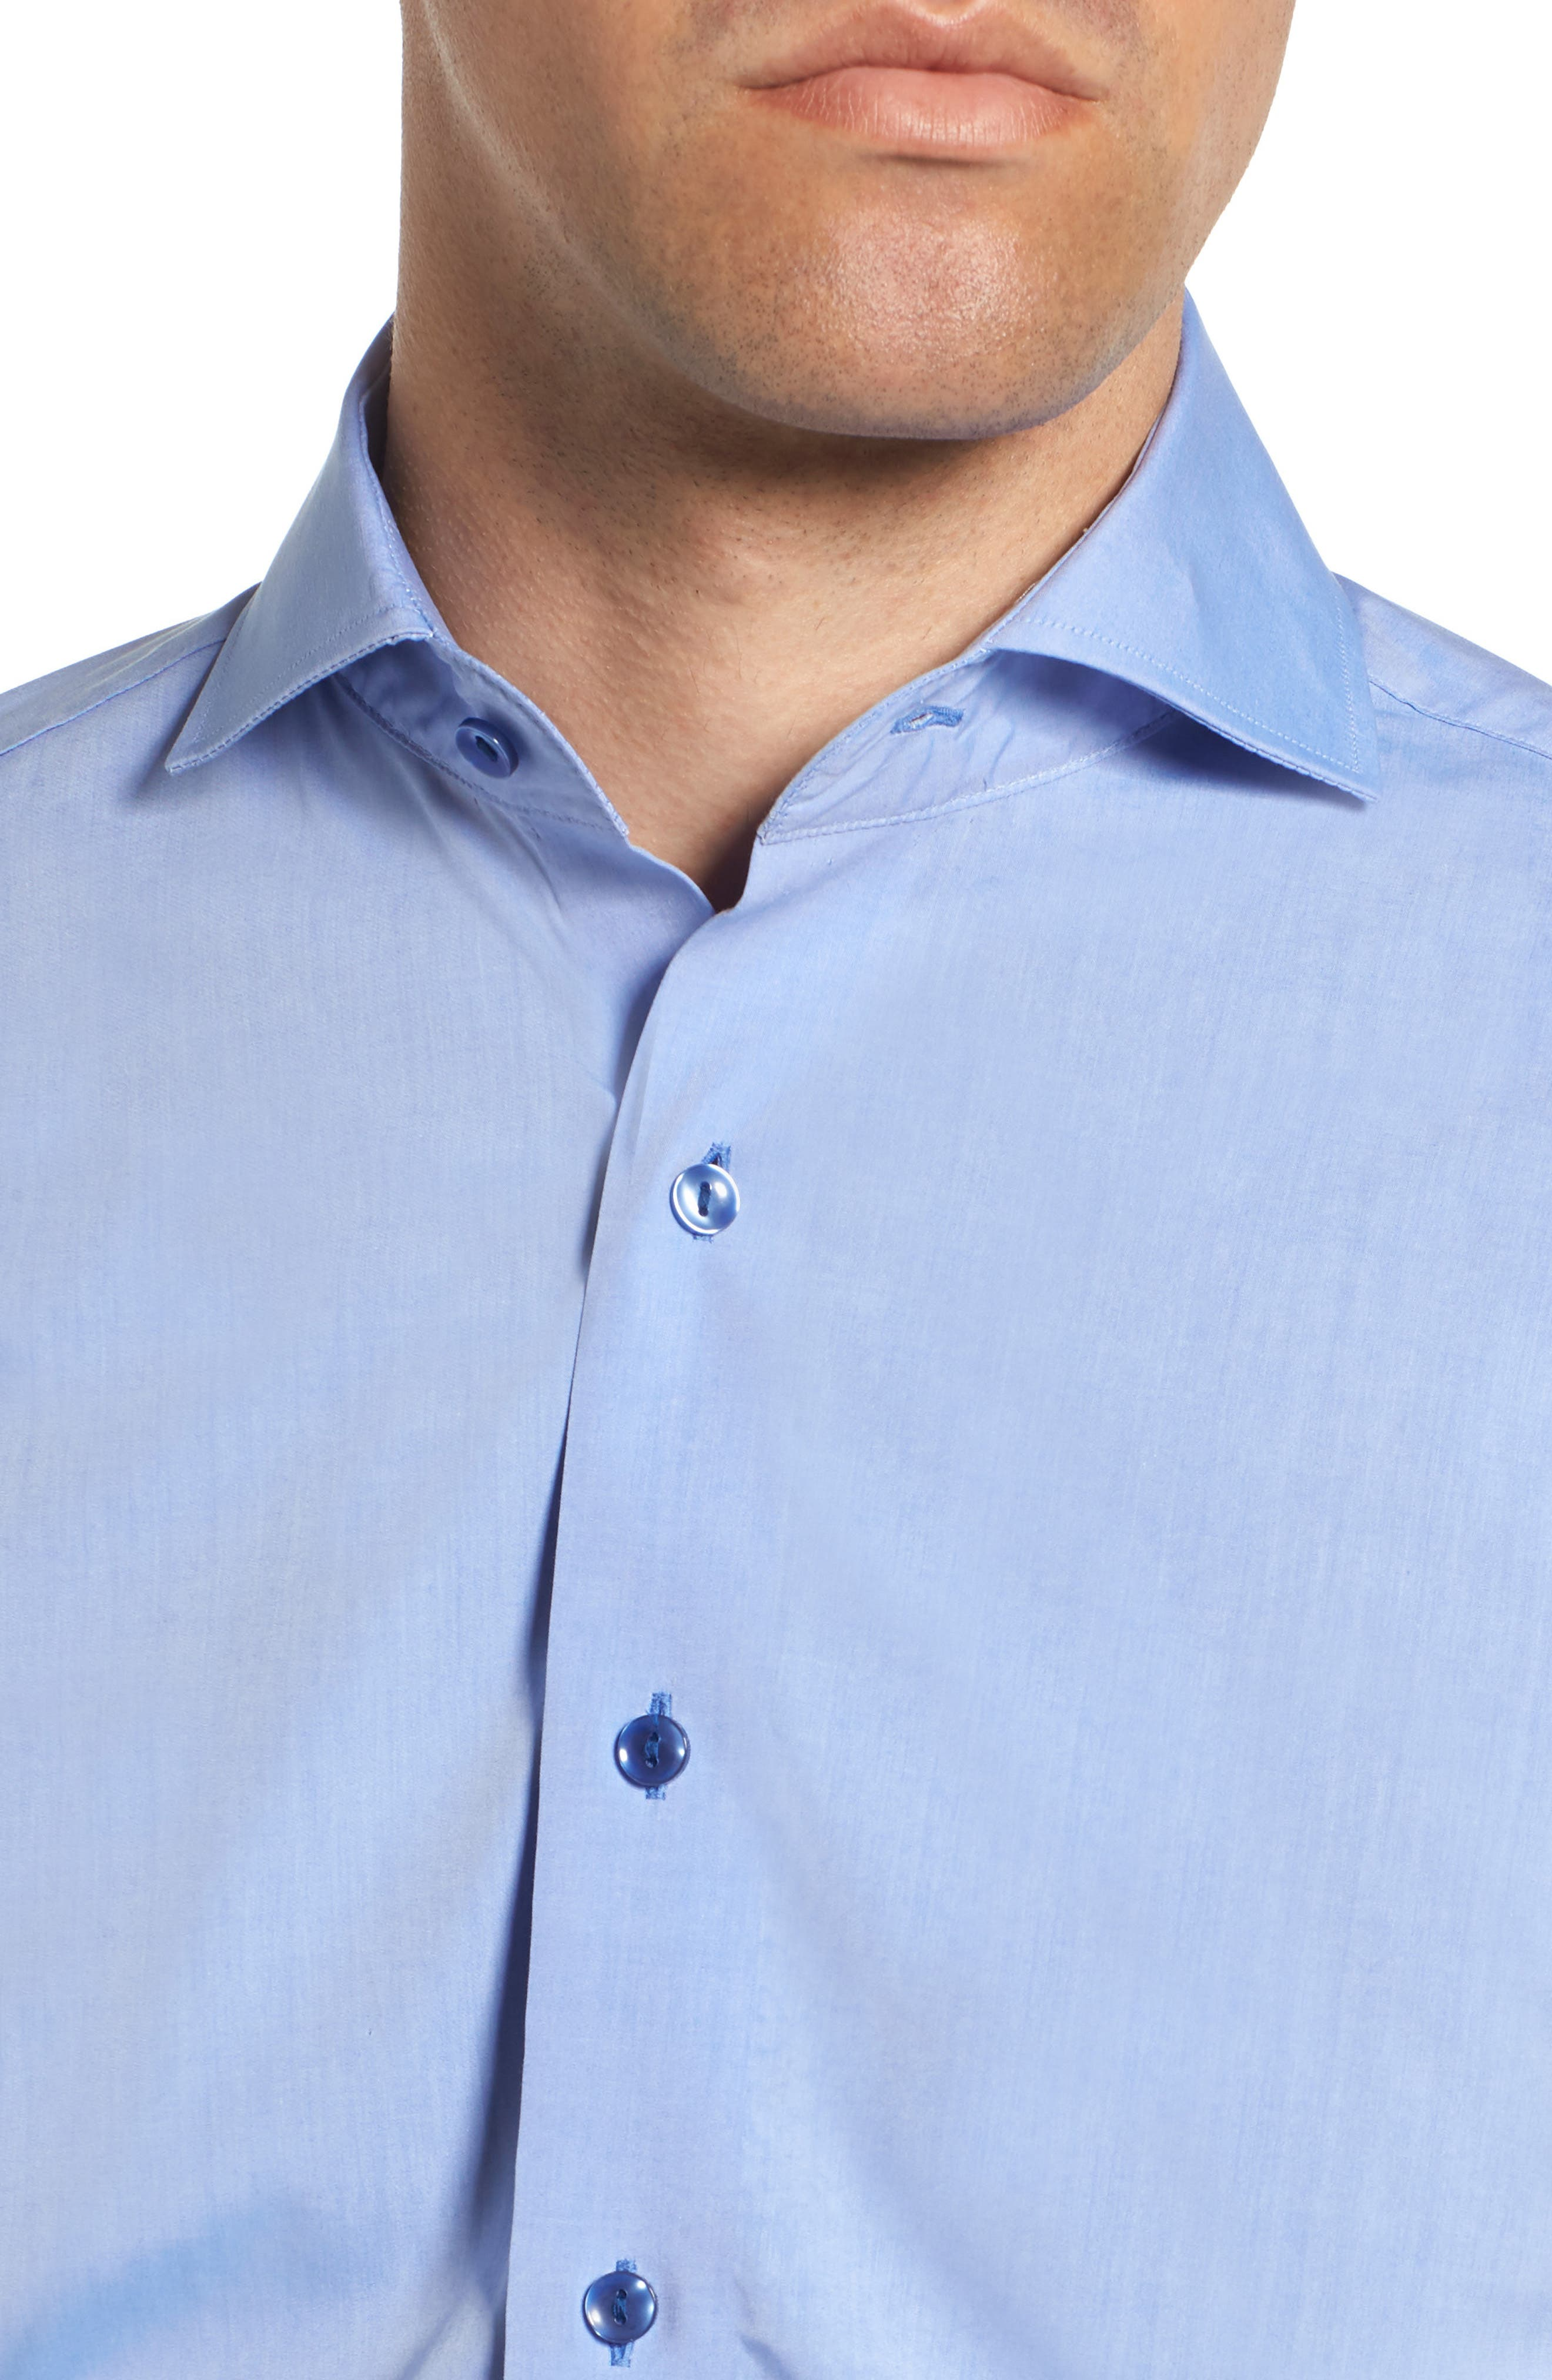 Trim Fit Solid Dress Shirt,                             Alternate thumbnail 2, color,                             BLUE